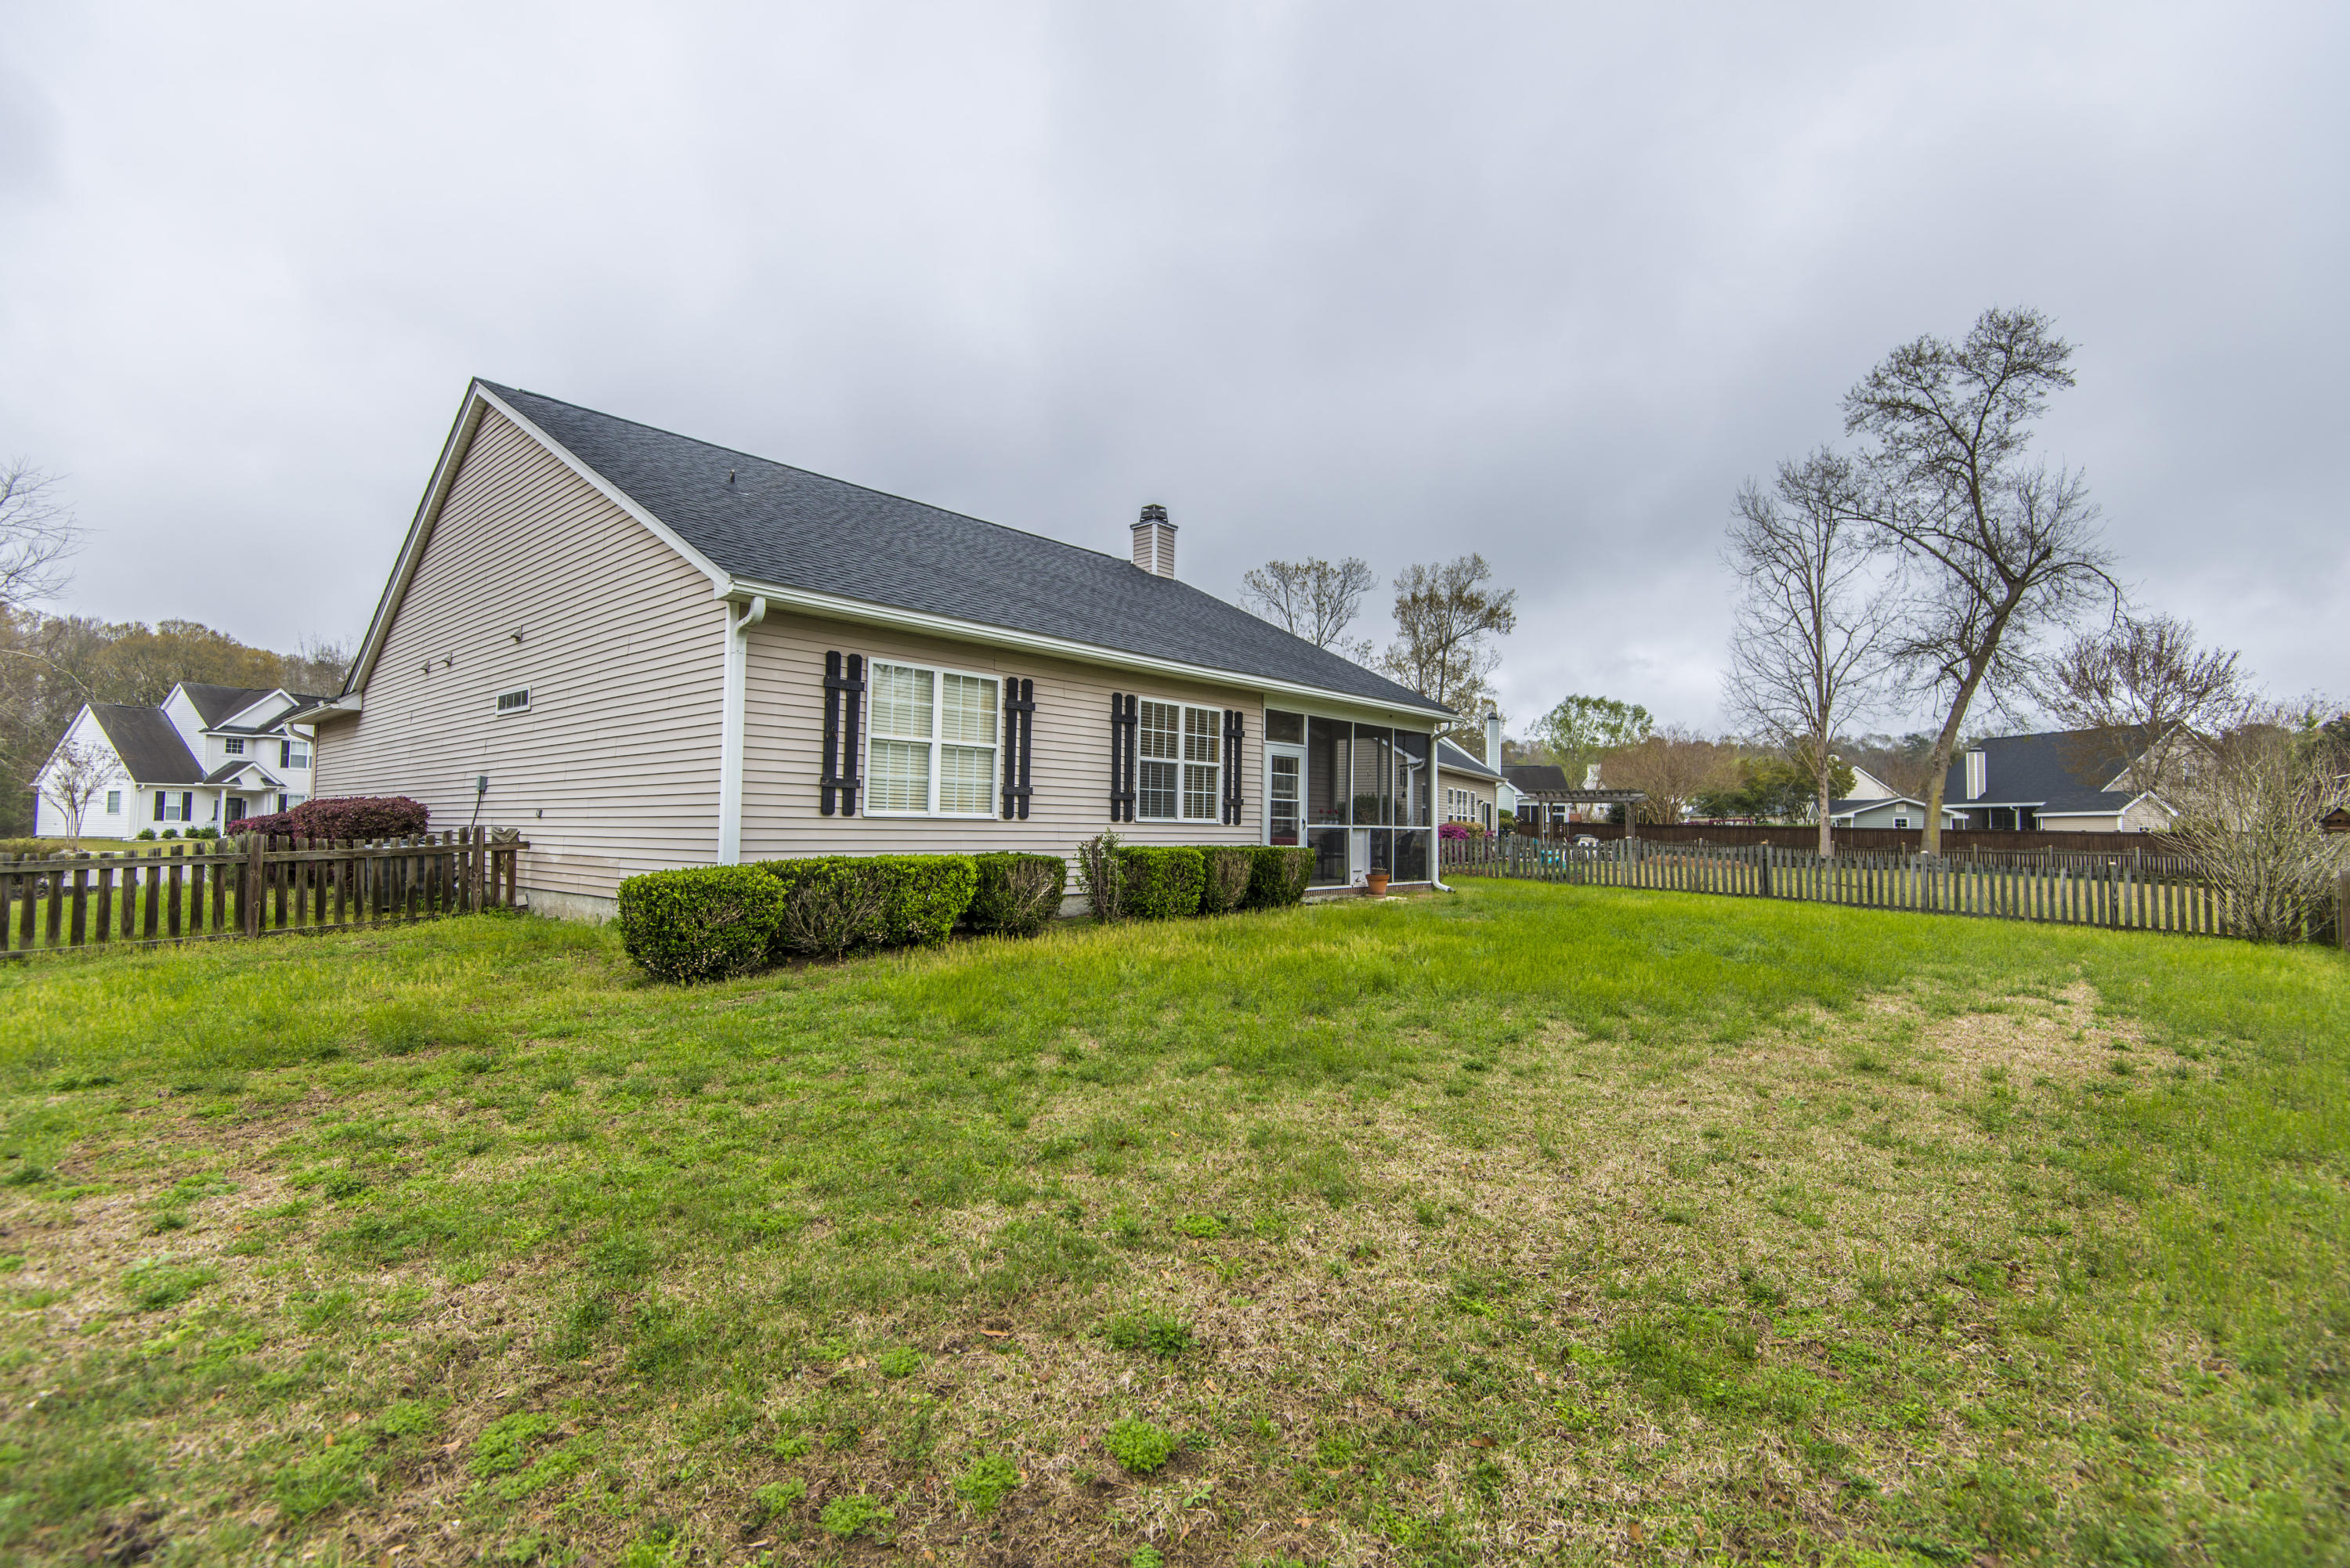 Photo of 109 Sumpter Hill Dr, Summerville, SC 29485